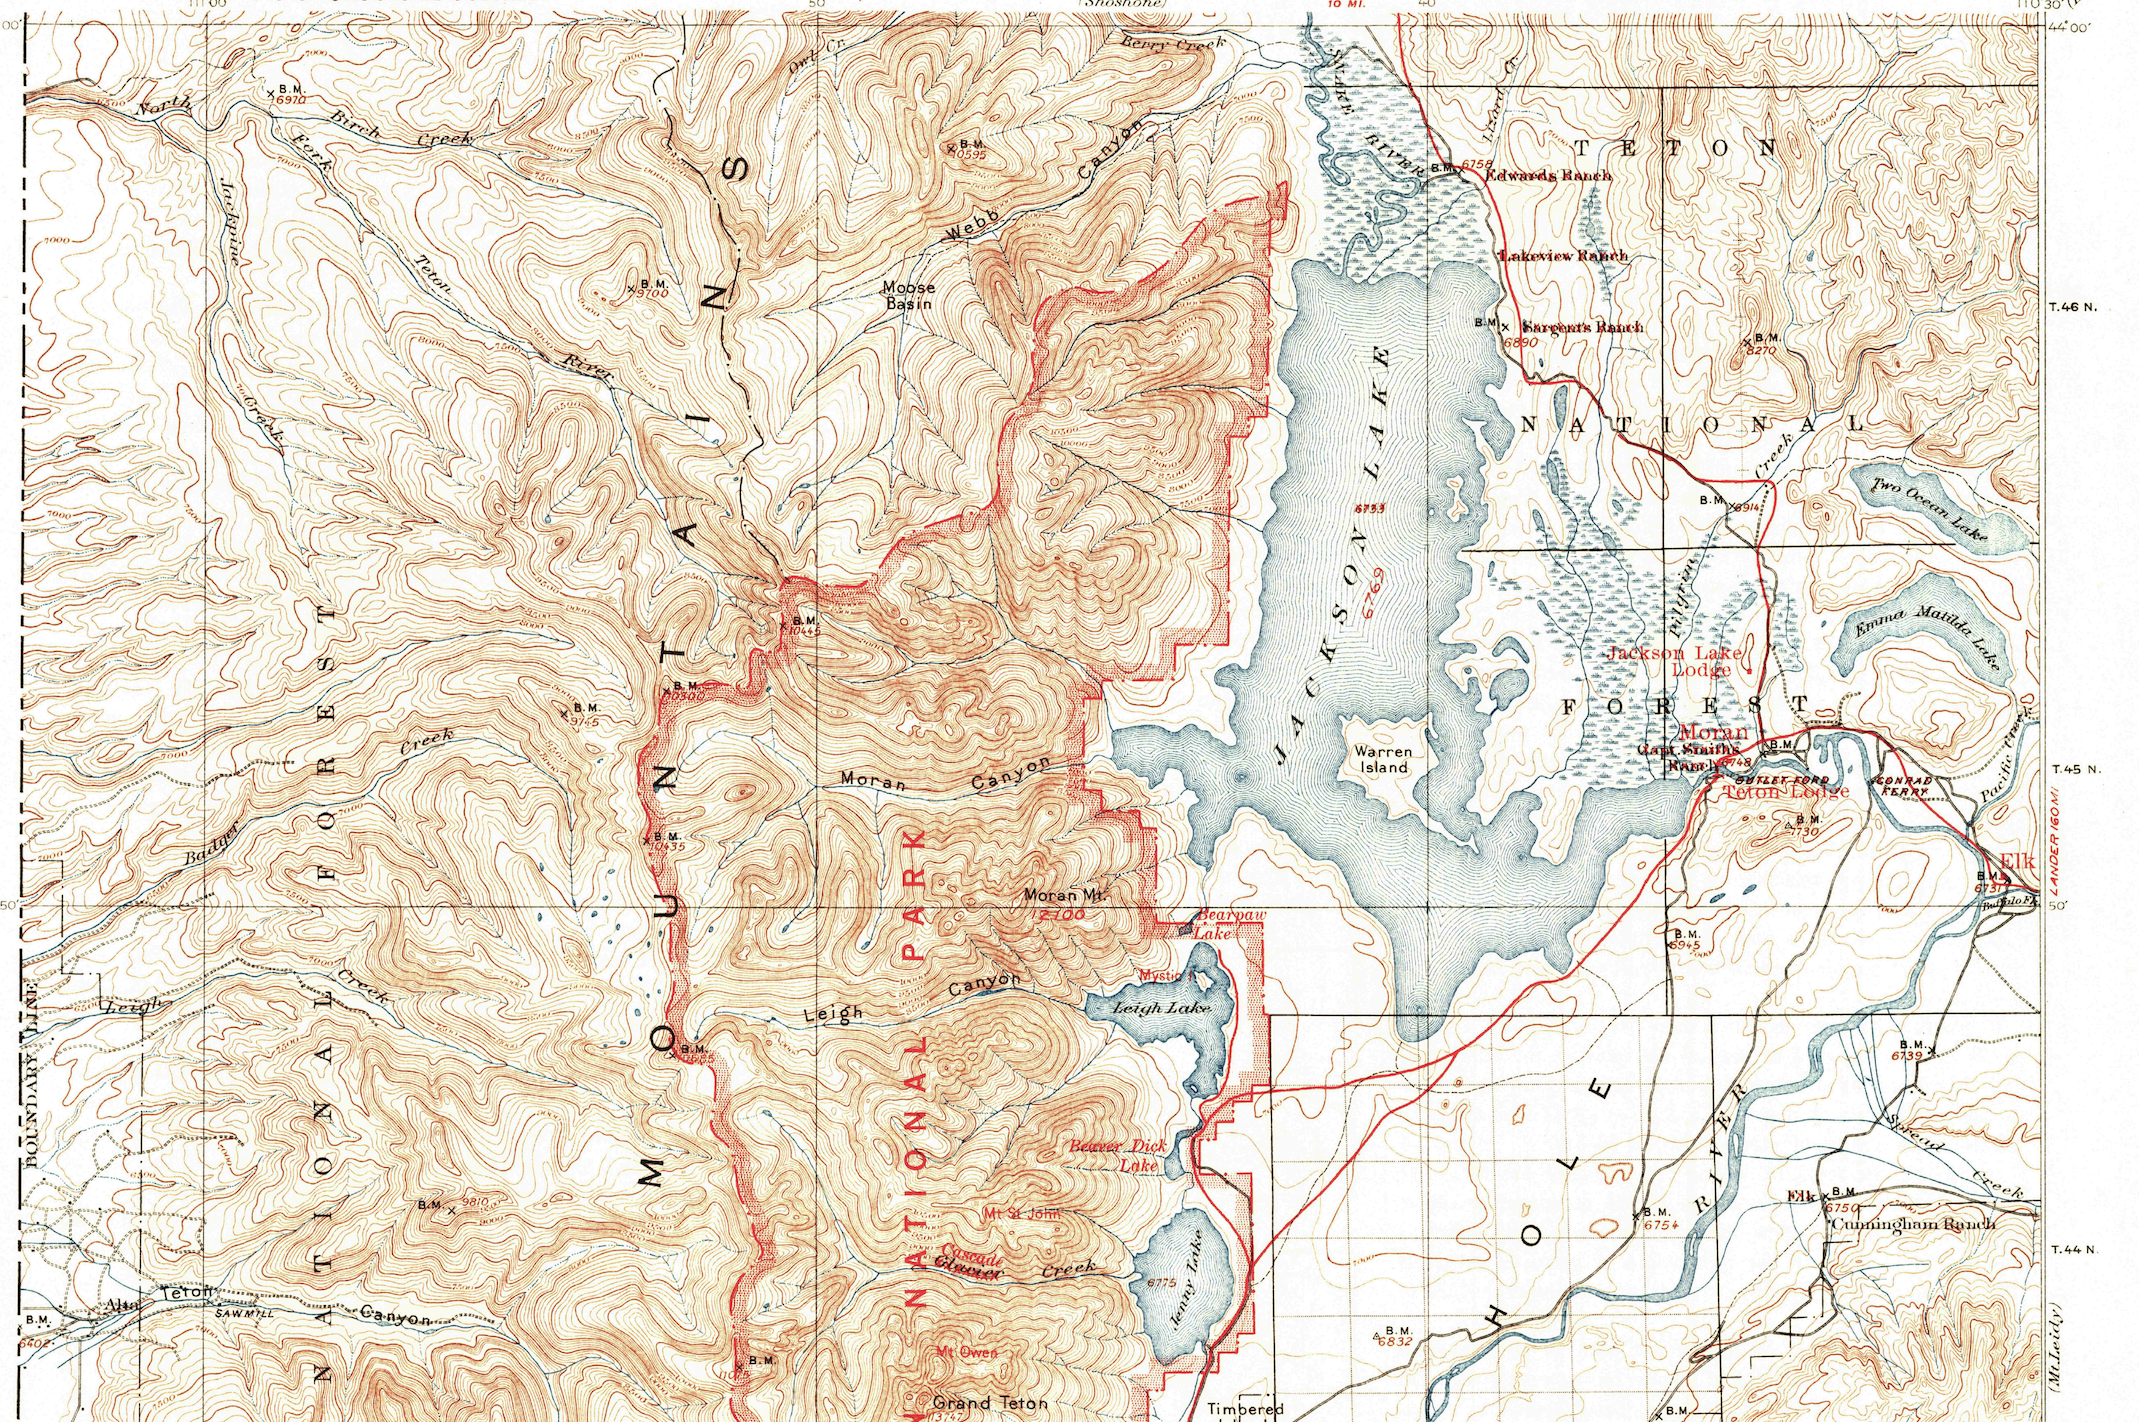 Yellowstone National Park Topographic Map.Grand Teton National Park 1901 Usgs Historical Topo Map Purple